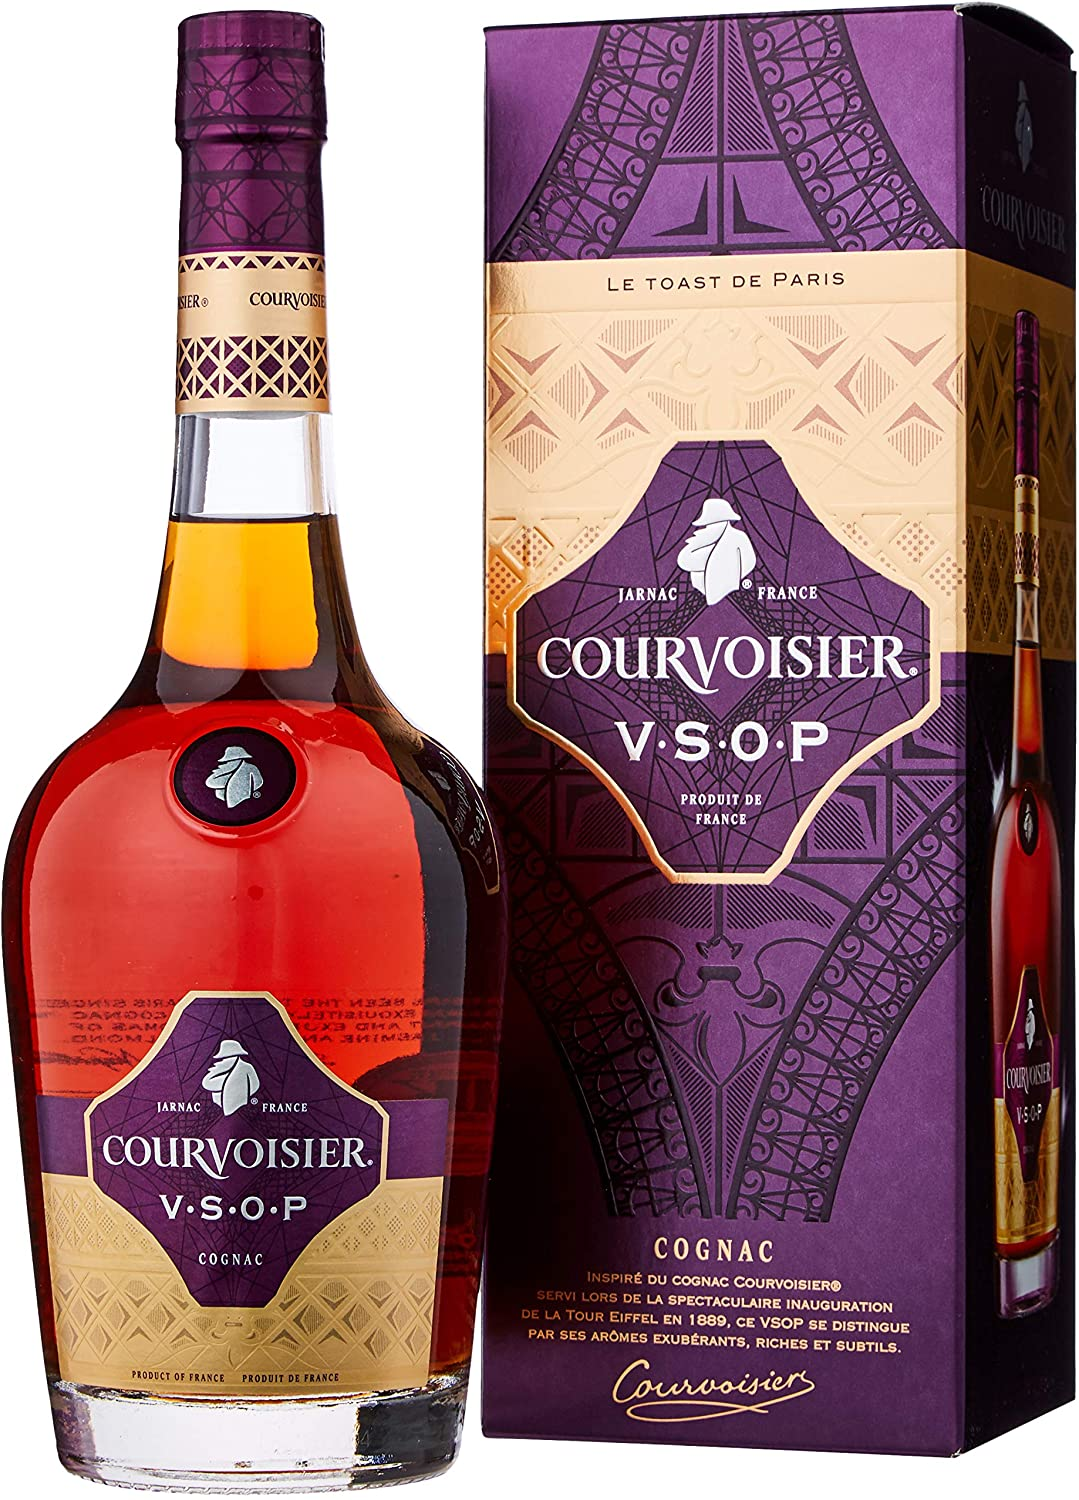 Courvoisier Brandy - Best Brandy Brands in India